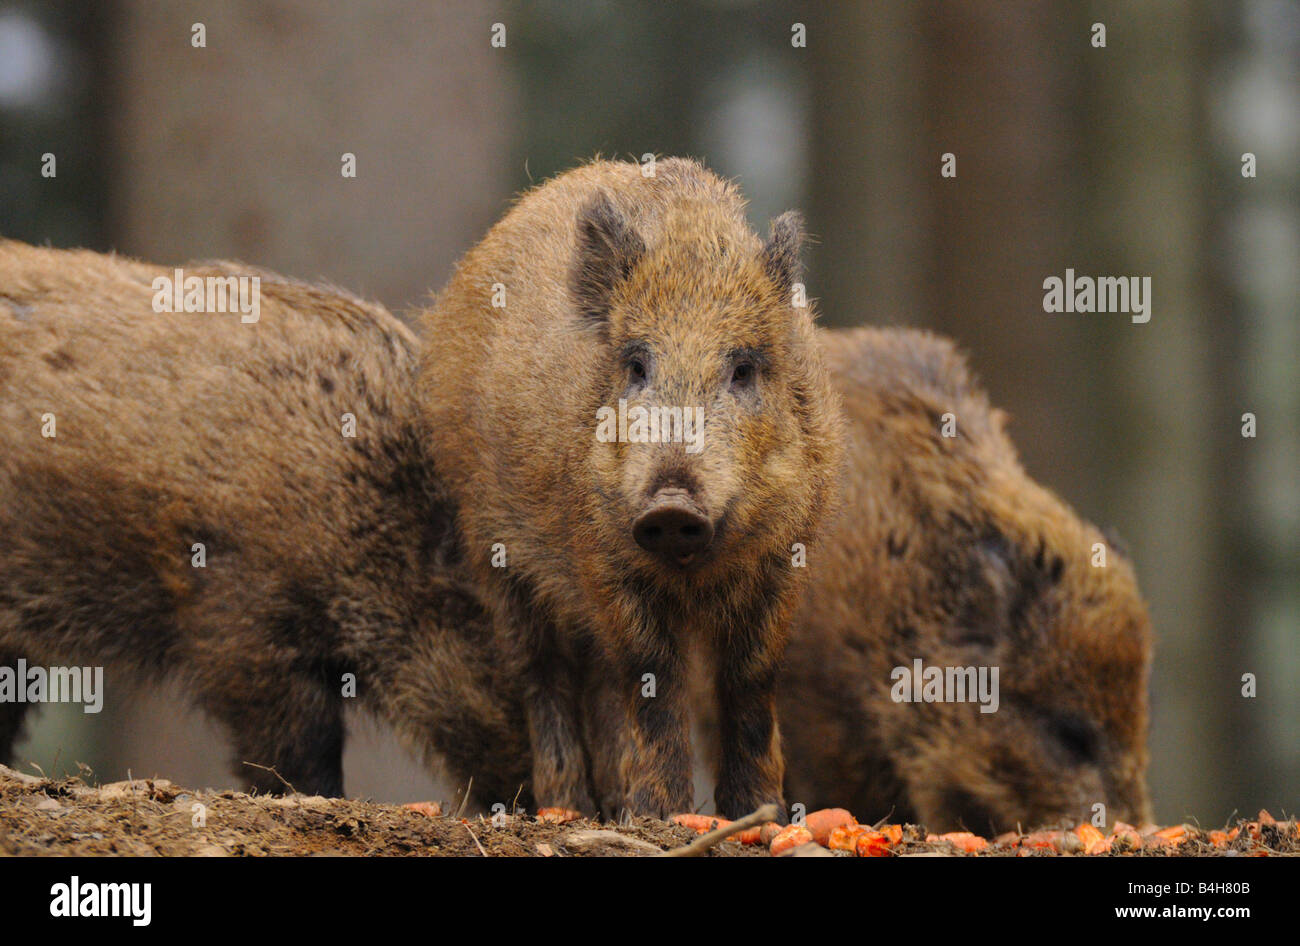 Three Wild Boars (Sus Scrofa) foraging in forest - Stock Image